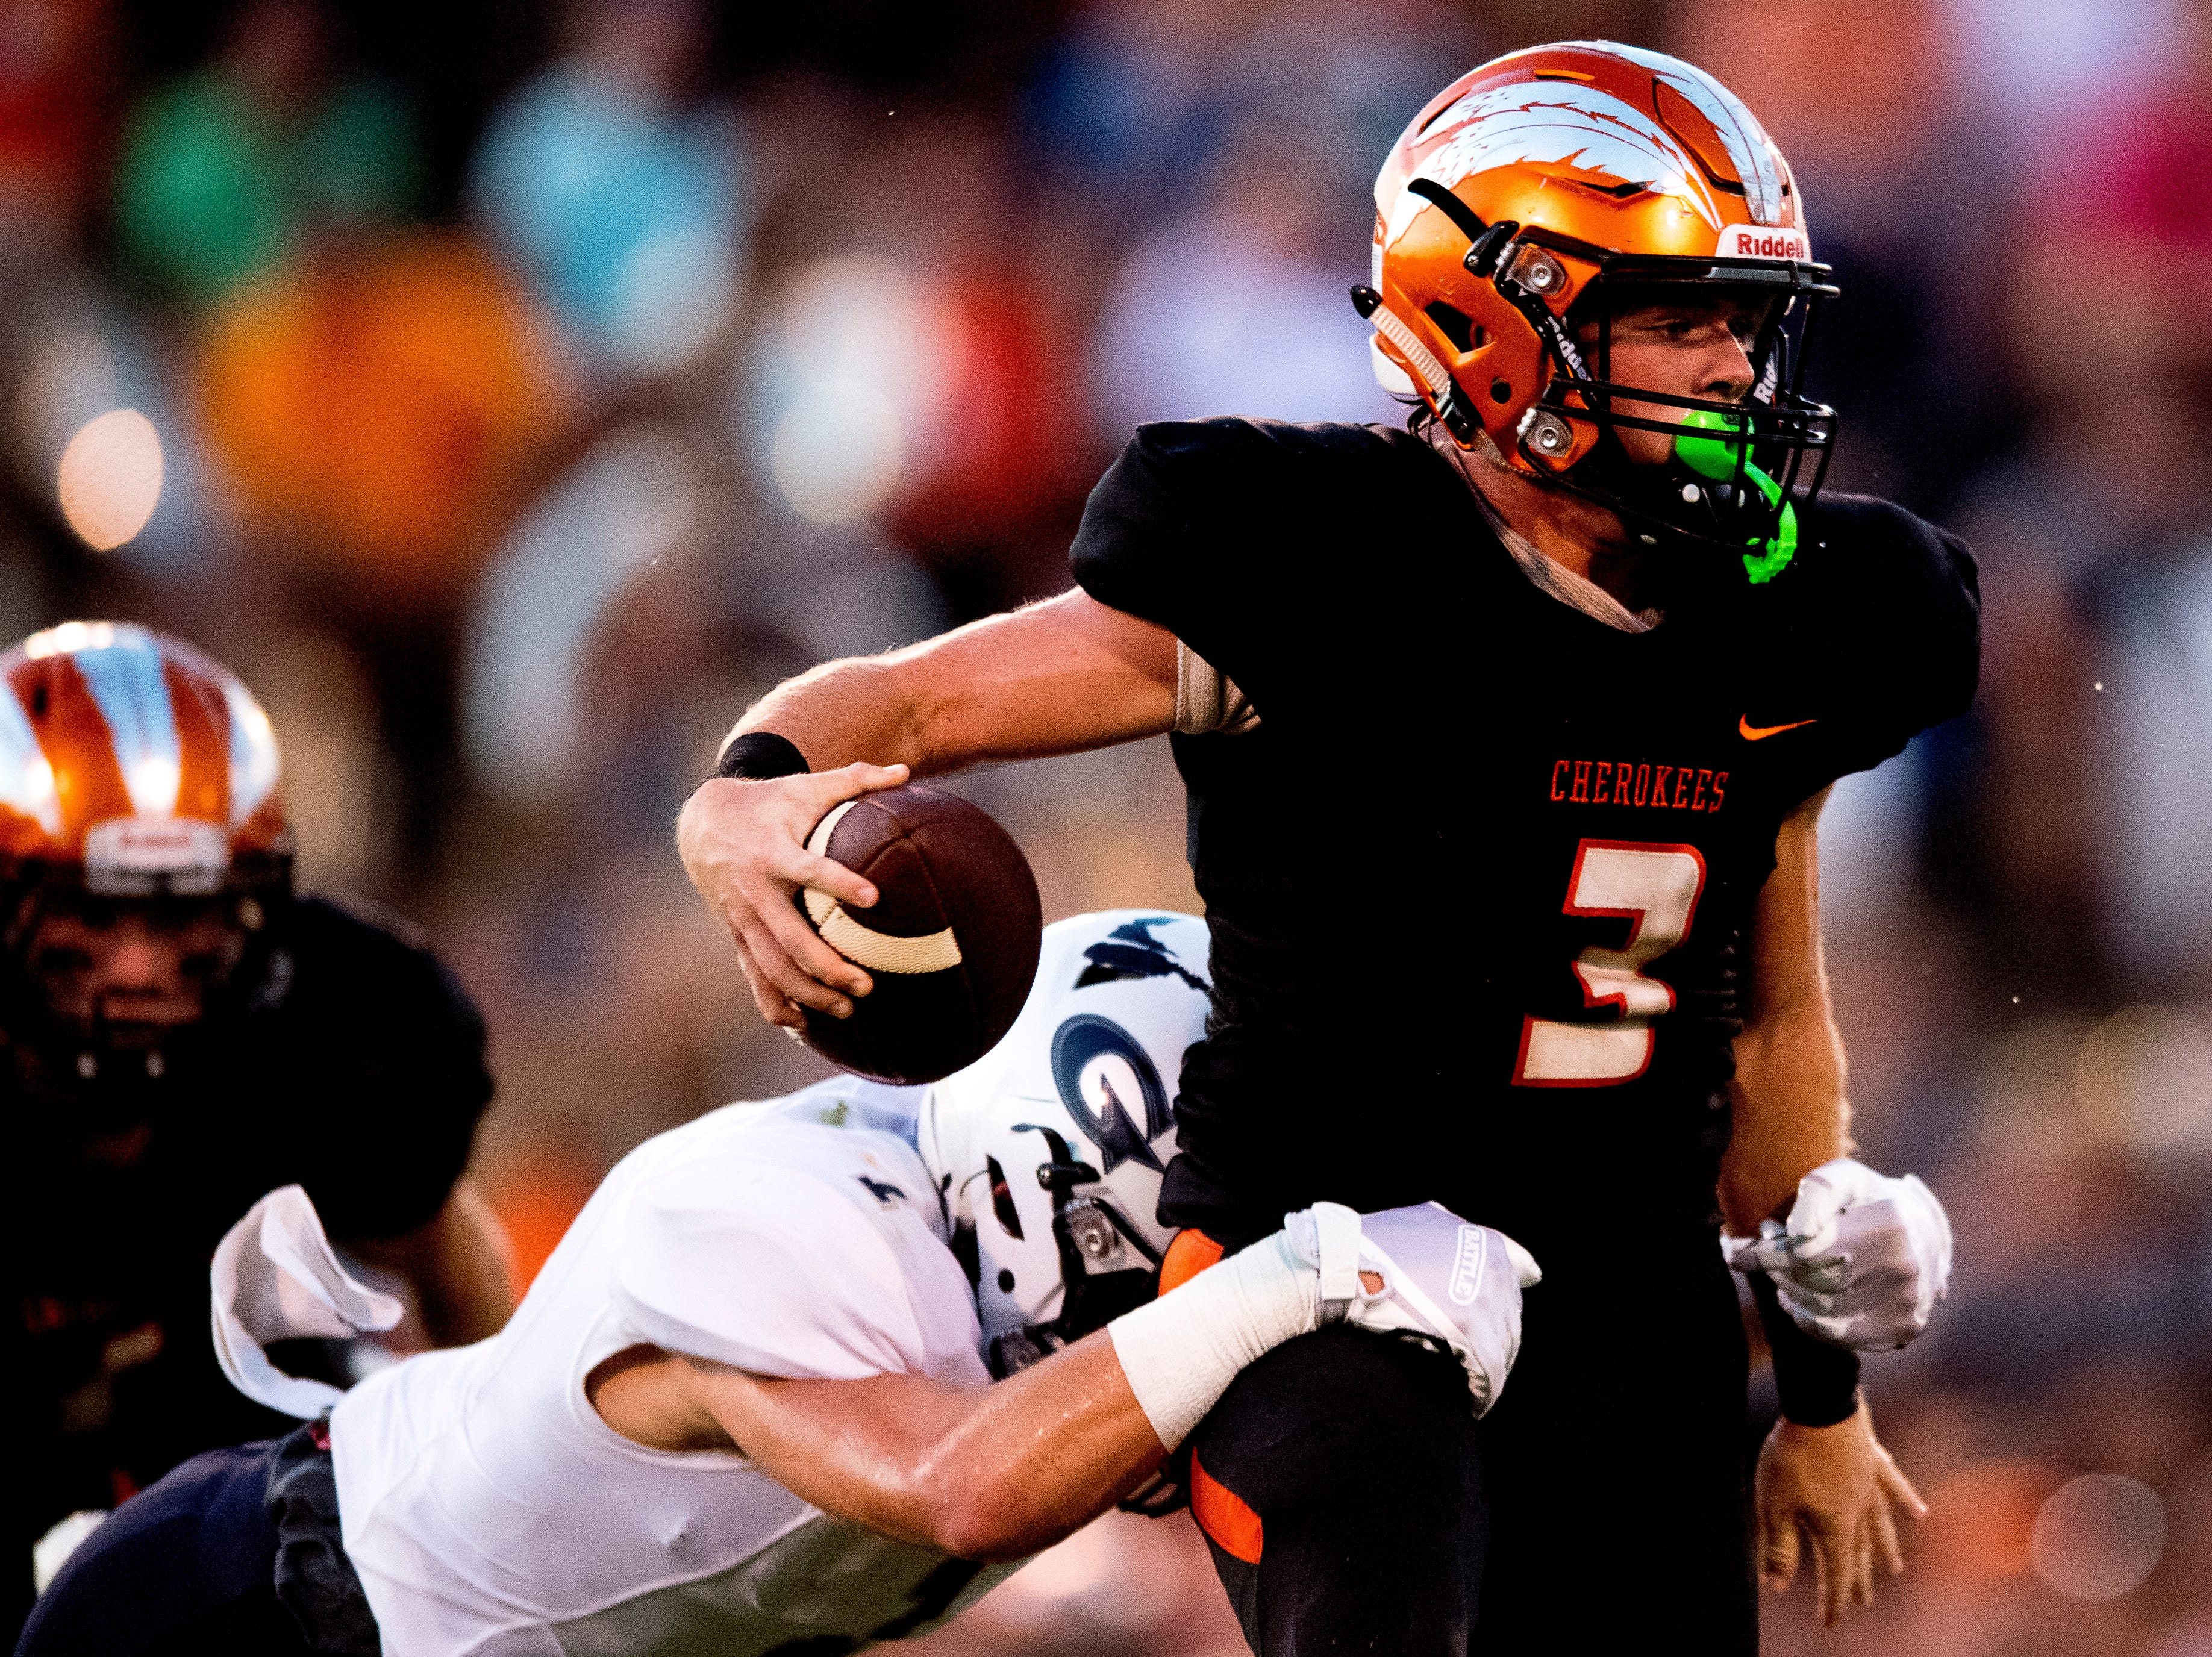 Greenback's Bryce Hanley (3) is attacked by Grace Christian's Michael Feiden (1) during a football game between Greenback and Grace Christian at Greenback High School in Greenback, Tennessee on Thursday, September 20, 2018.